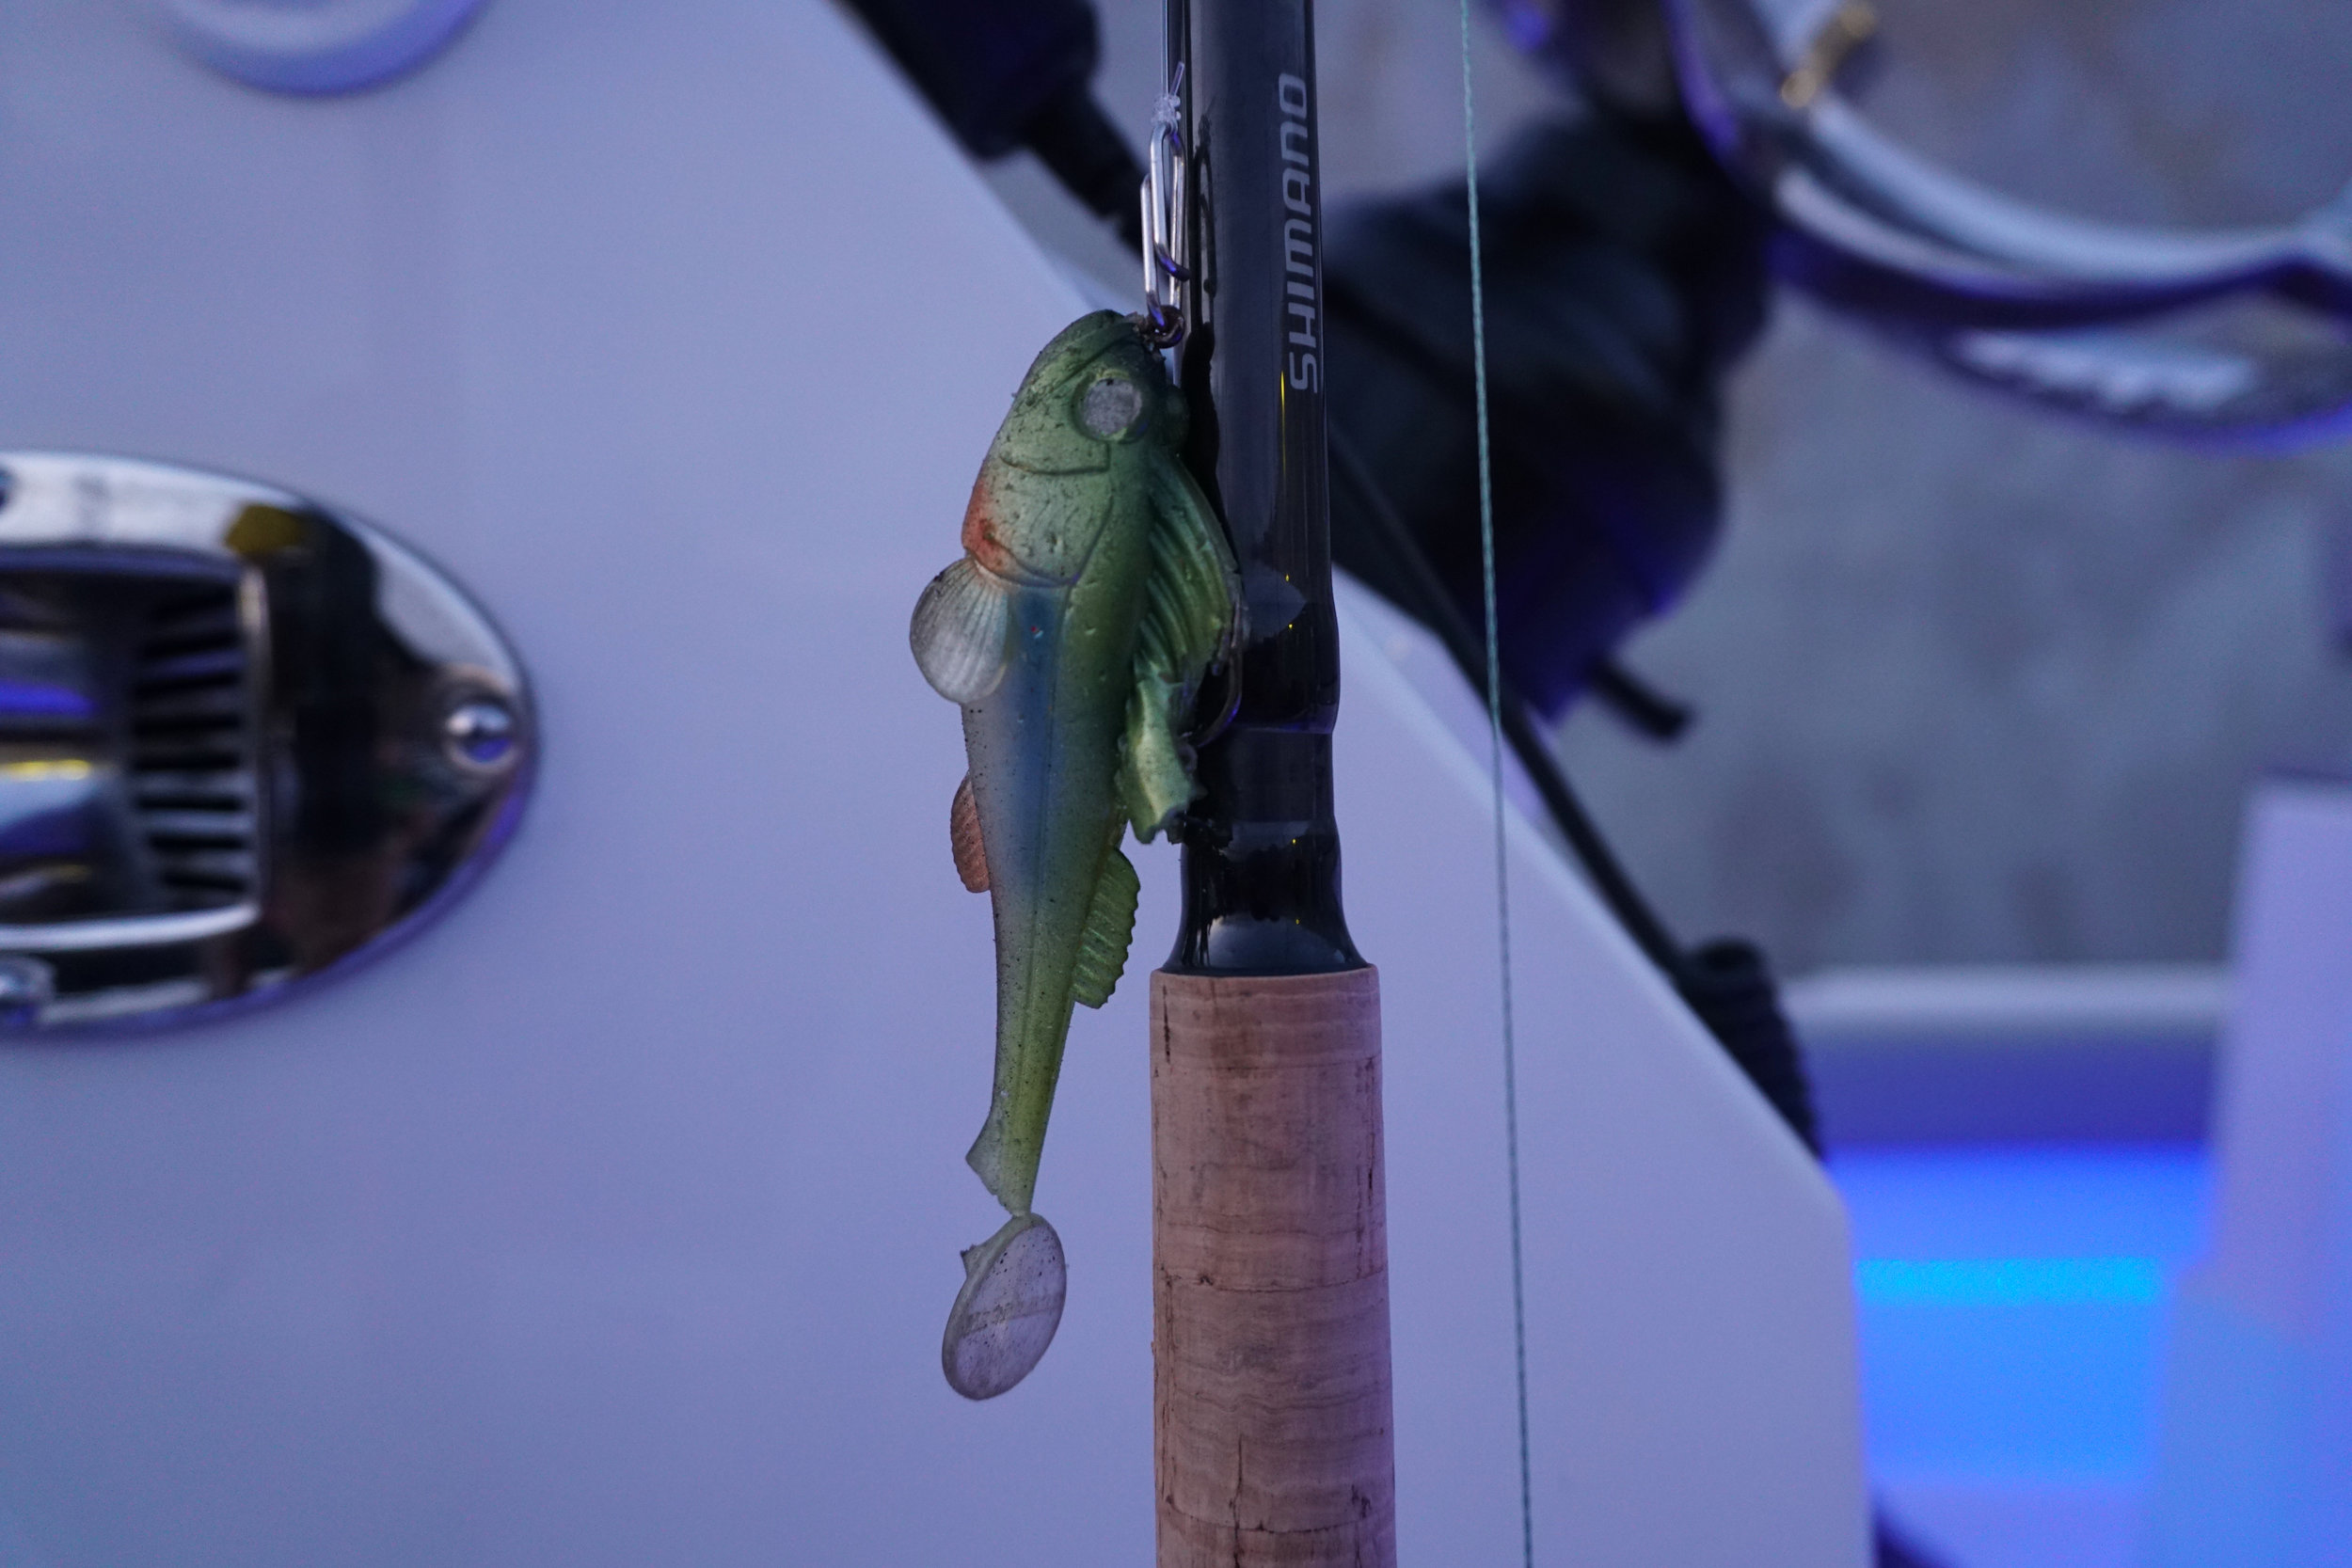 The 1-ounce MegaBass Dark Sleeper in the Hanahaze pattern (bait's tail is torn in the image).